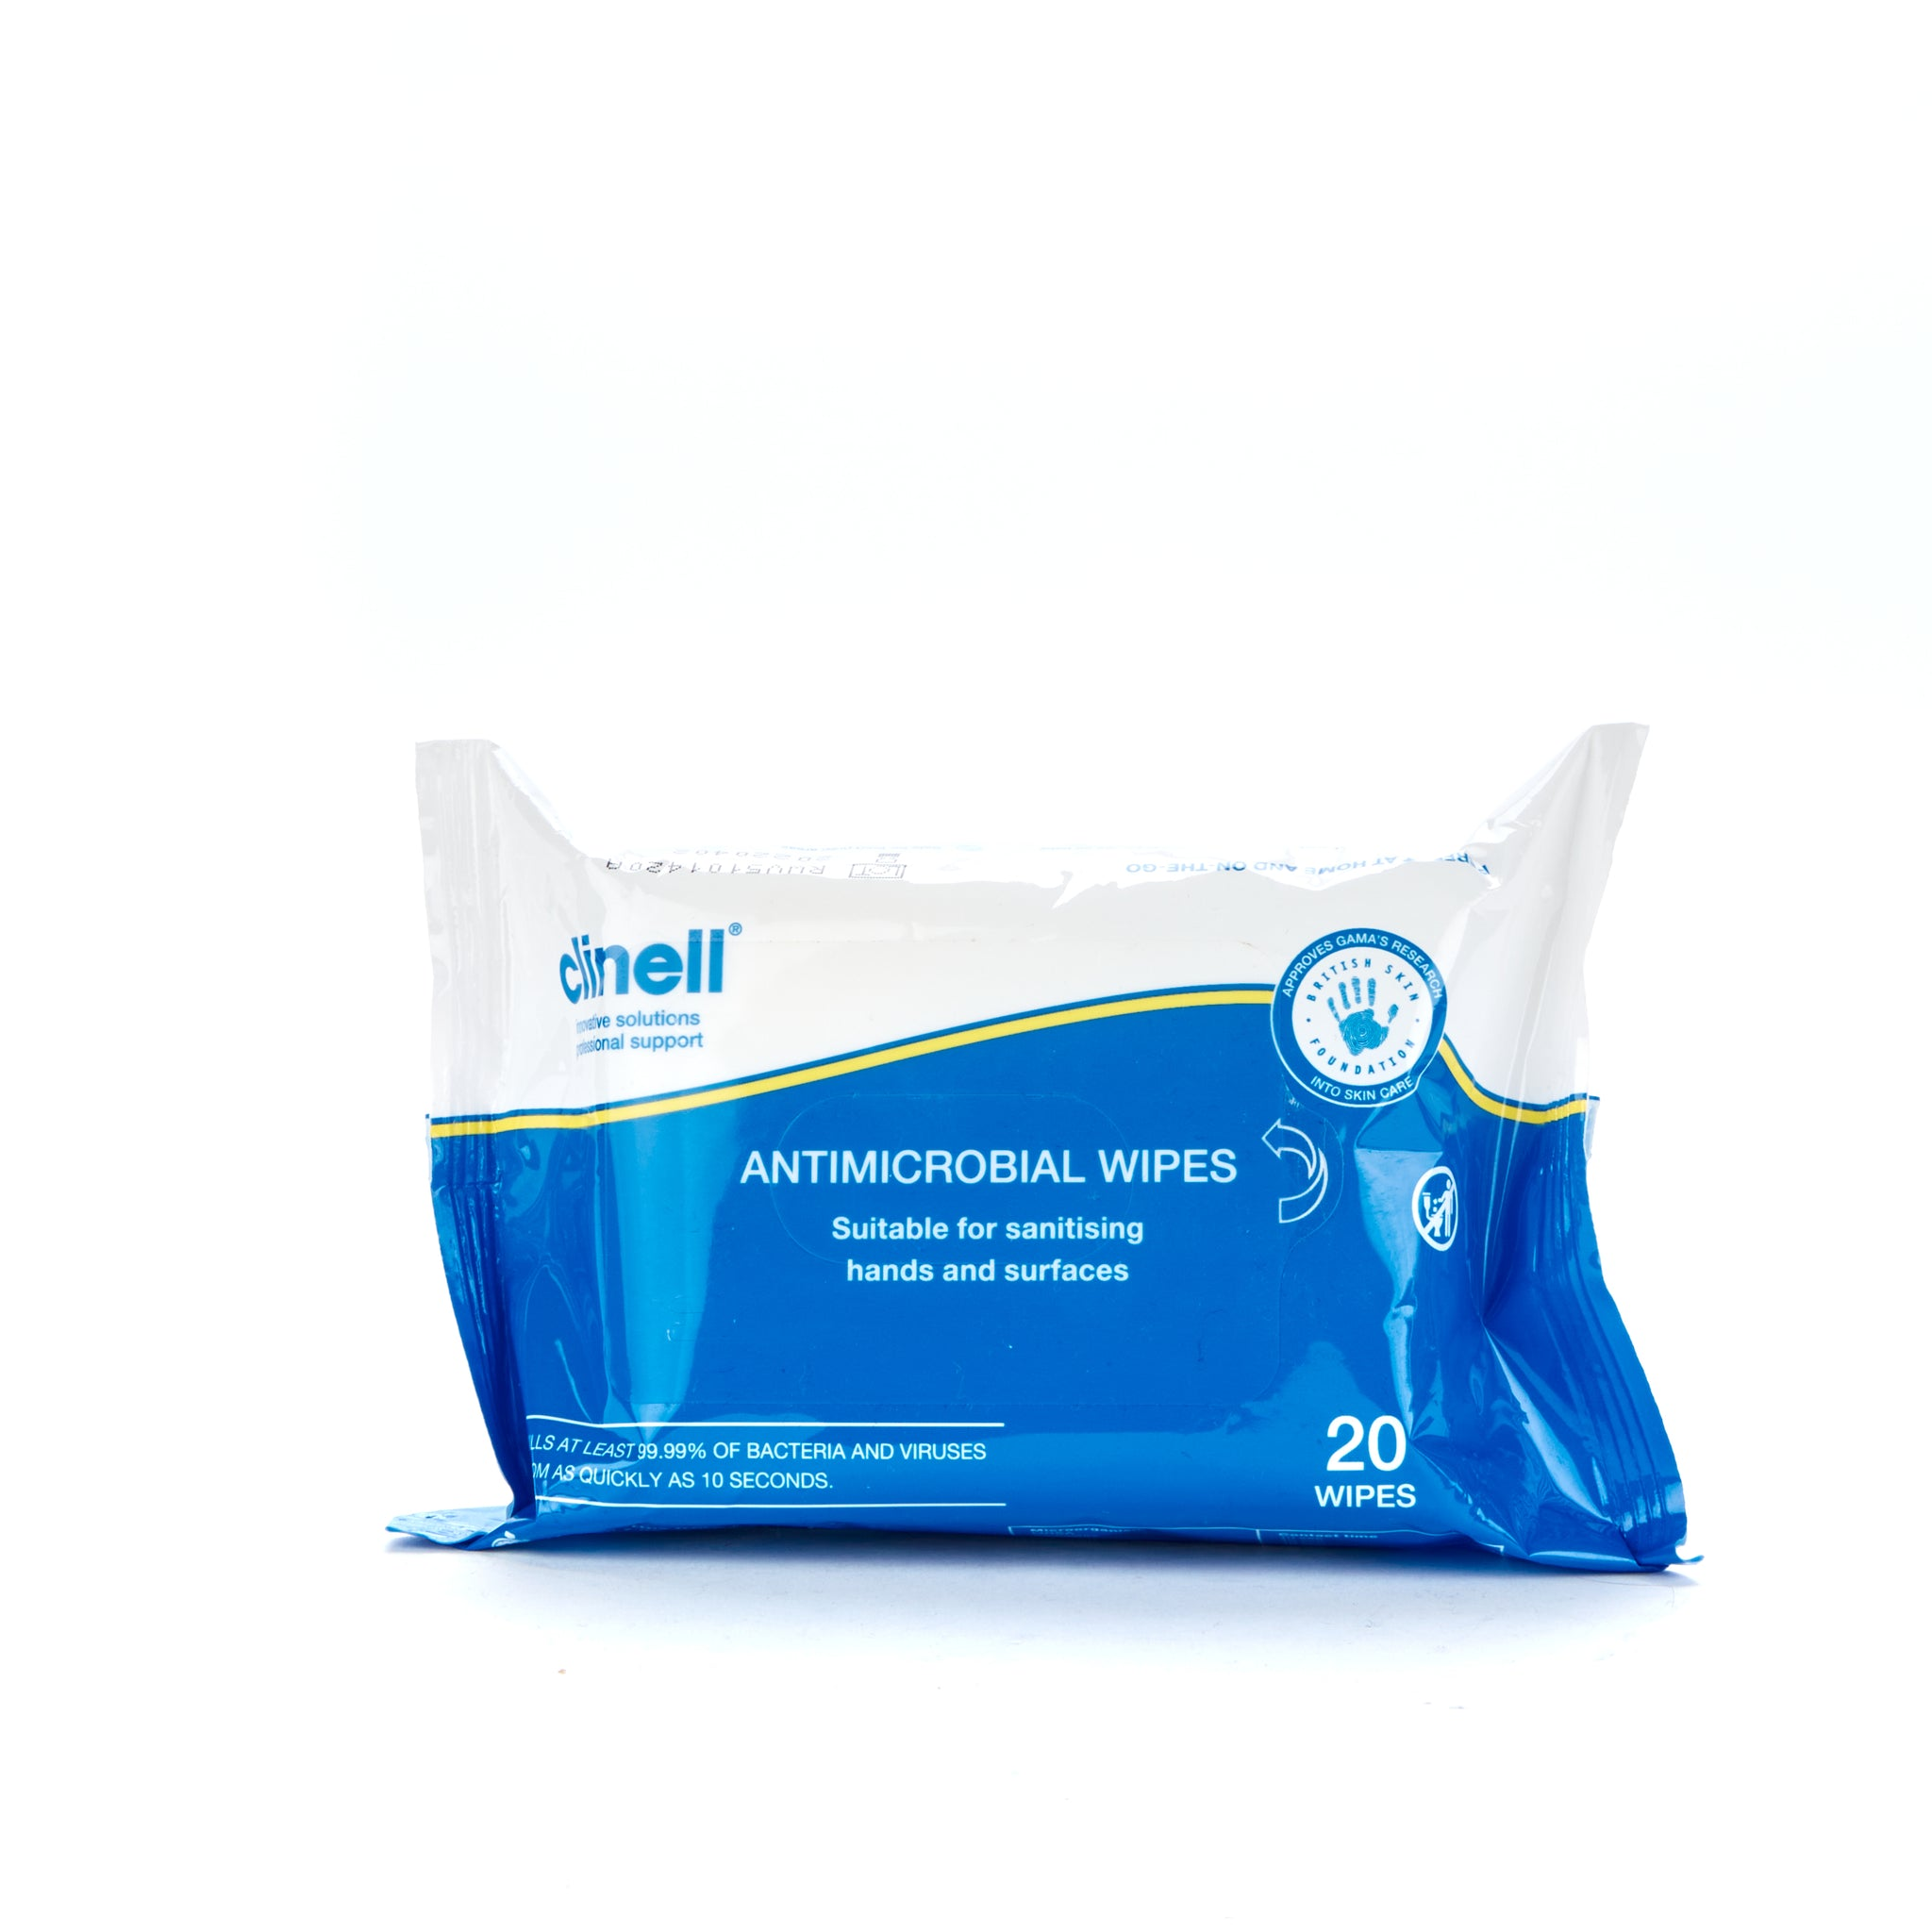 Clinell Antimicrobial Hand and Surface Wipes 20 RAW20